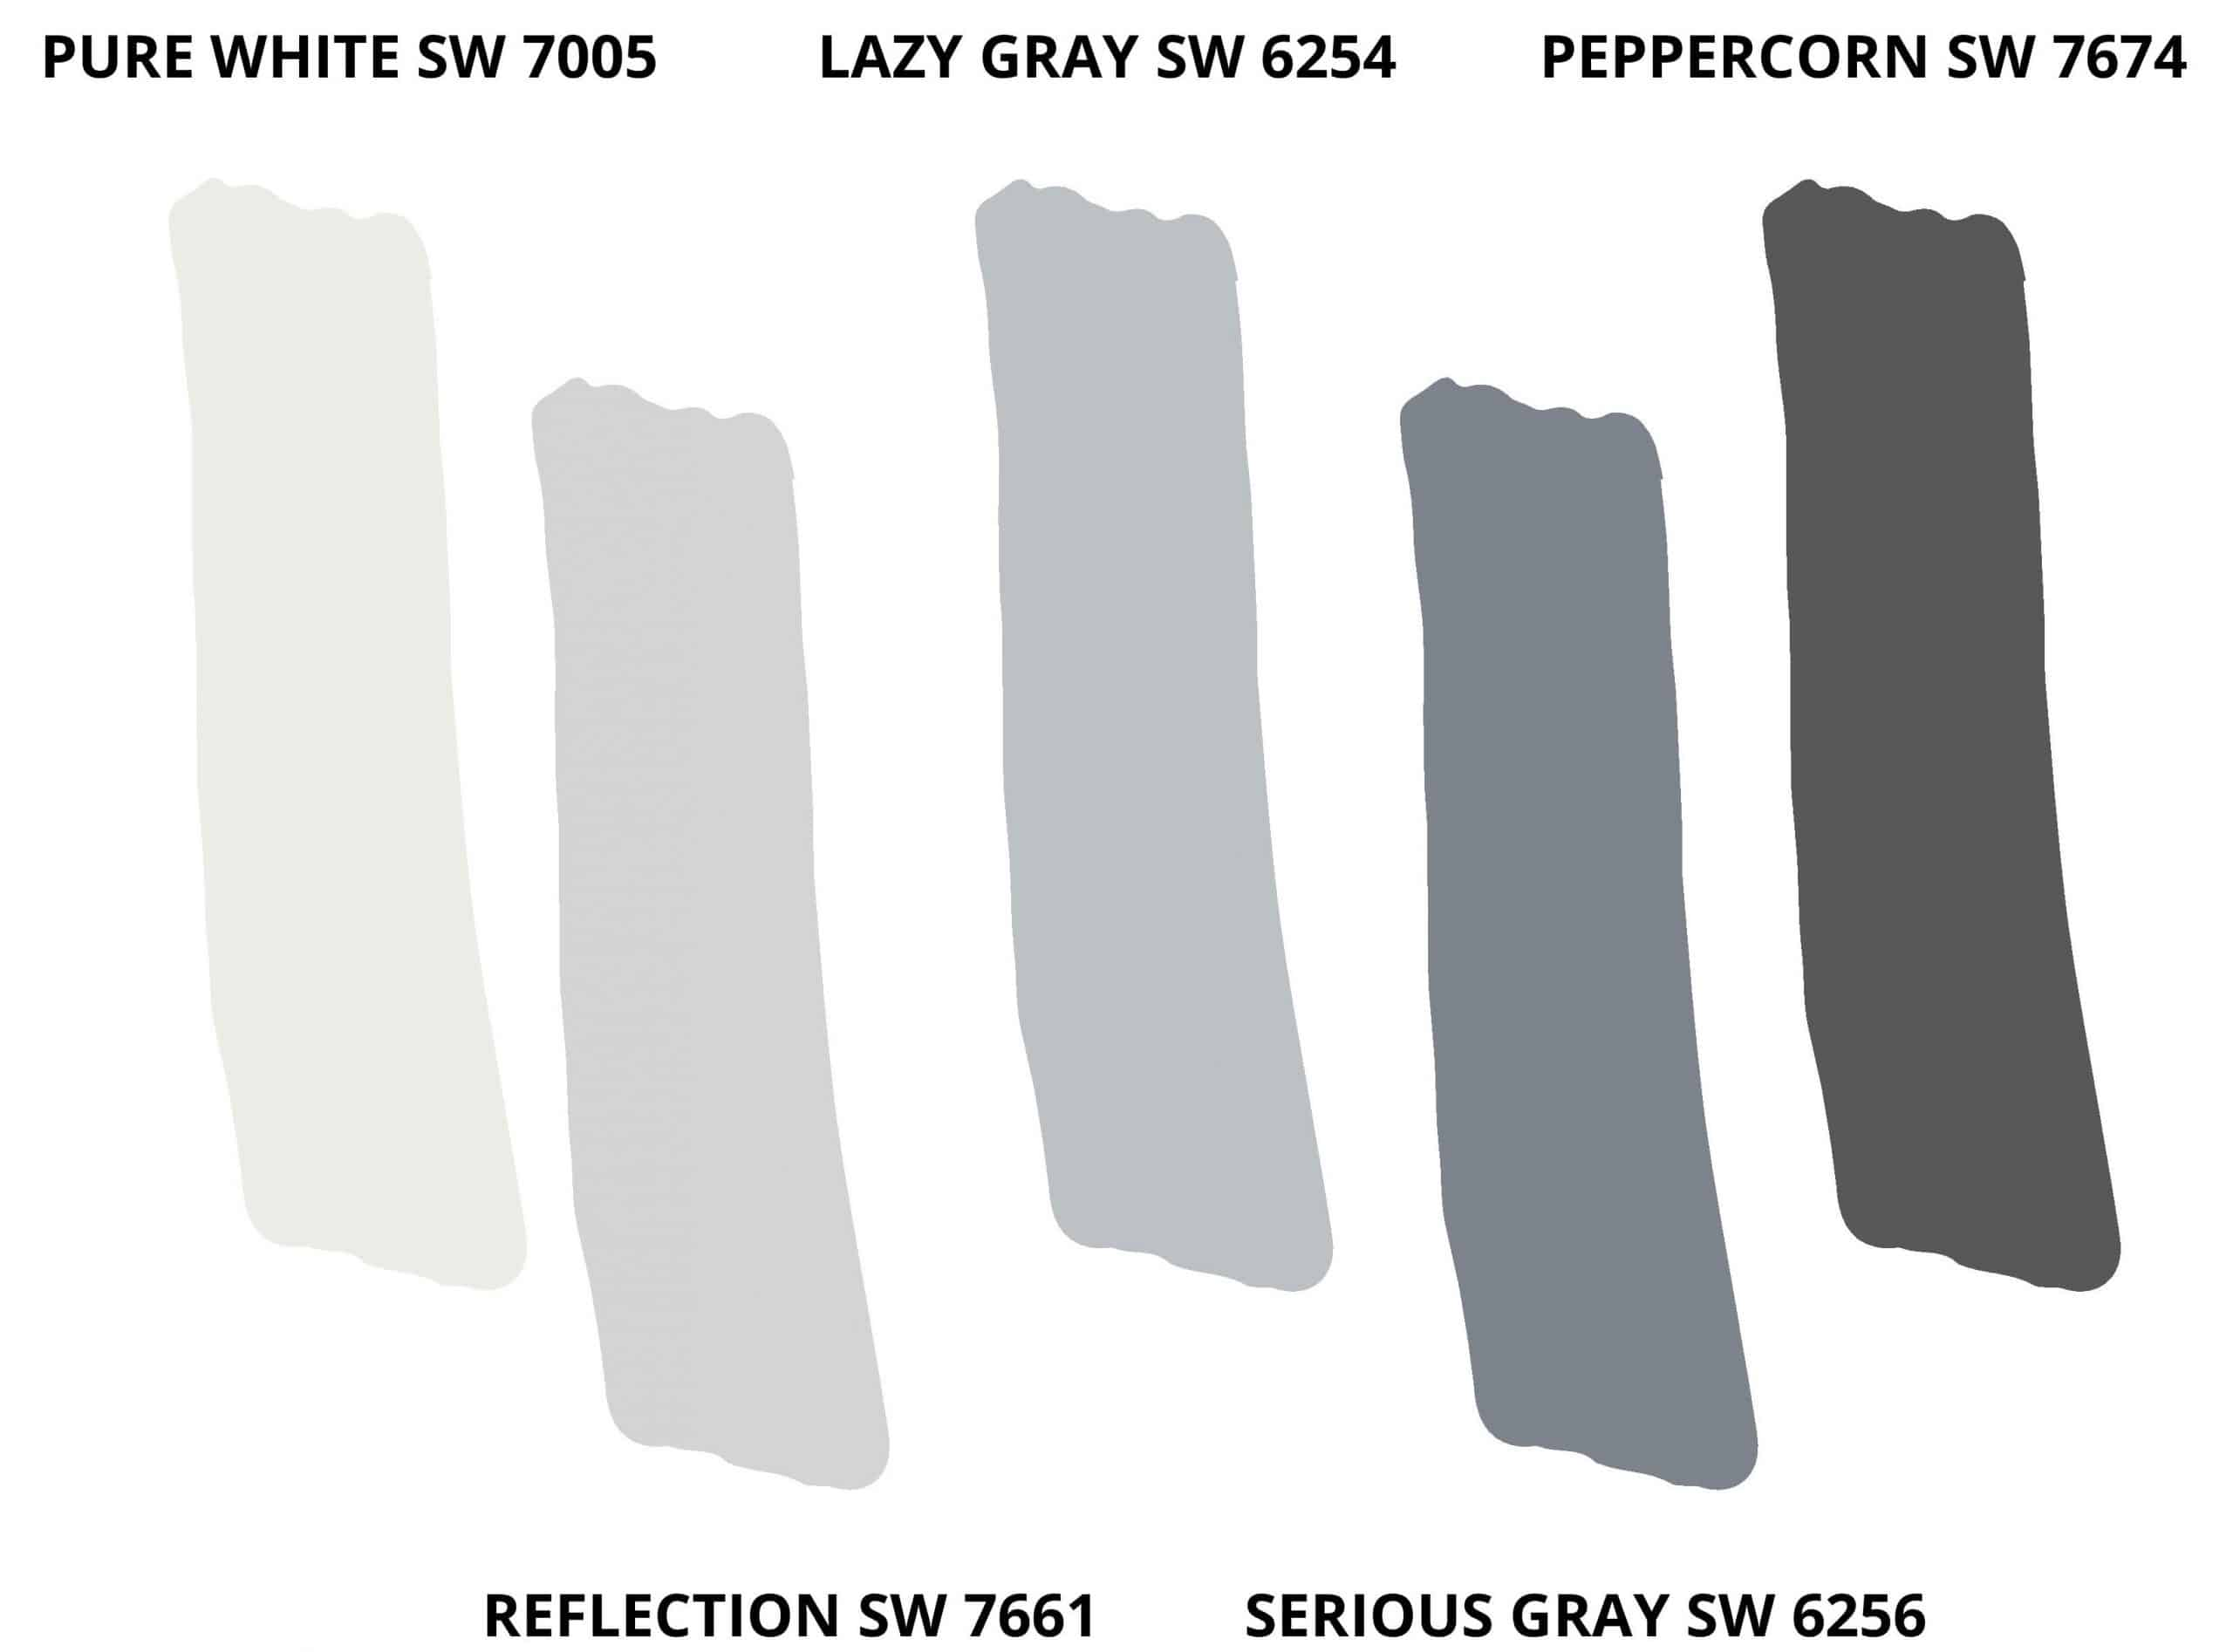 Teenage Boy Bedroom by popular Dallas life and style blog, Glamorous Versatility: image of grey paint swatches.